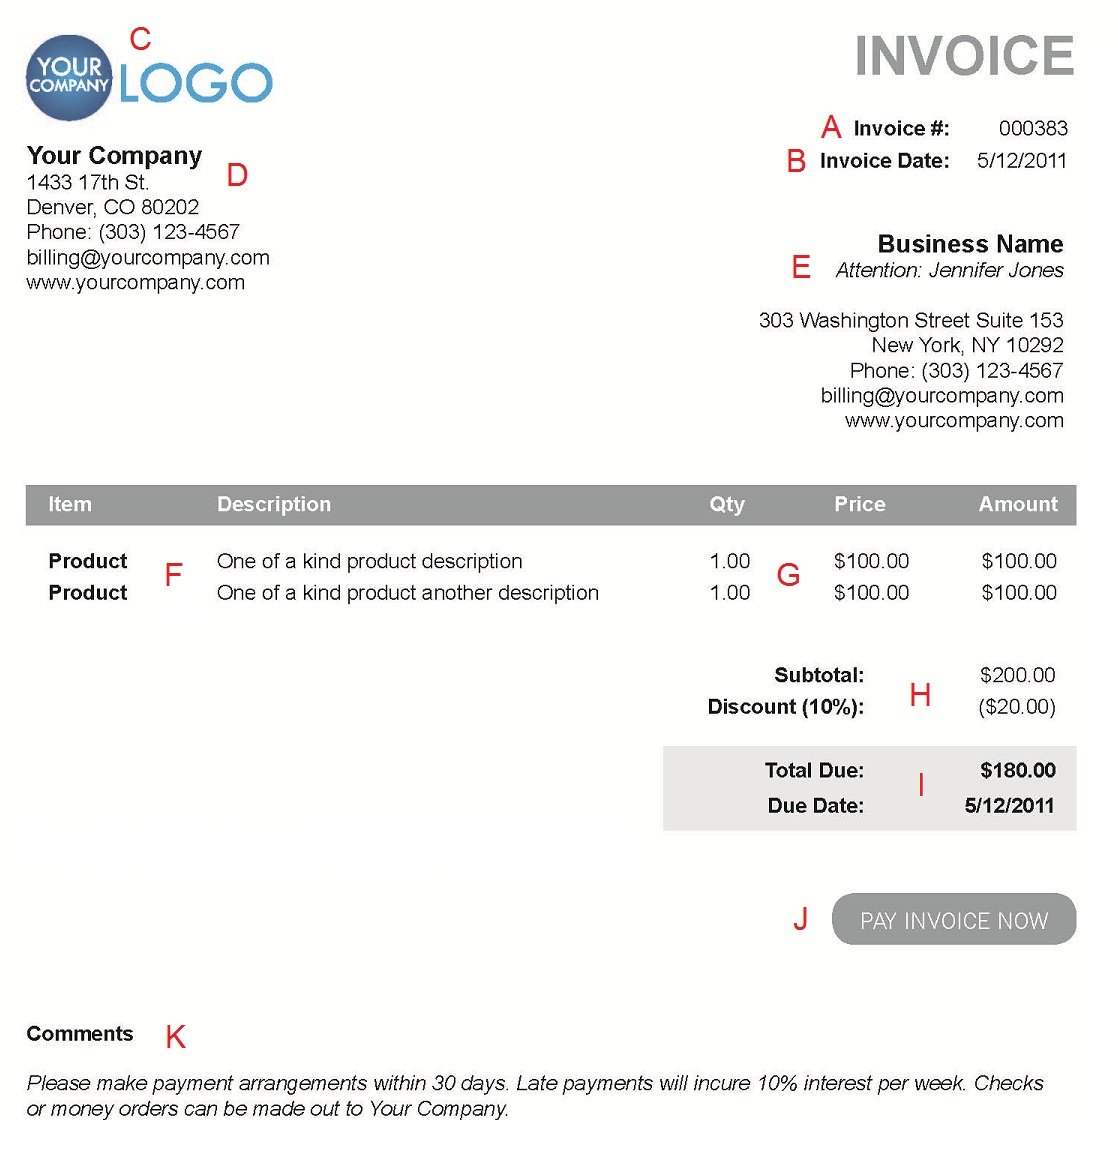 Soulfulpowerus  Mesmerizing The  Different Sections Of An Electronic Payment Invoice With Magnificent A  With Charming Equipment Interchange Receipt Also Michigan Gross Receipts Tax In Addition Creating Receipts And Texas Gross Receipts Tax Rate As Well As Copy Of A Receipt To Print Additionally Receipt And Business Card Scanner From Paysimplecom With Soulfulpowerus  Magnificent The  Different Sections Of An Electronic Payment Invoice With Charming A  And Mesmerizing Equipment Interchange Receipt Also Michigan Gross Receipts Tax In Addition Creating Receipts From Paysimplecom